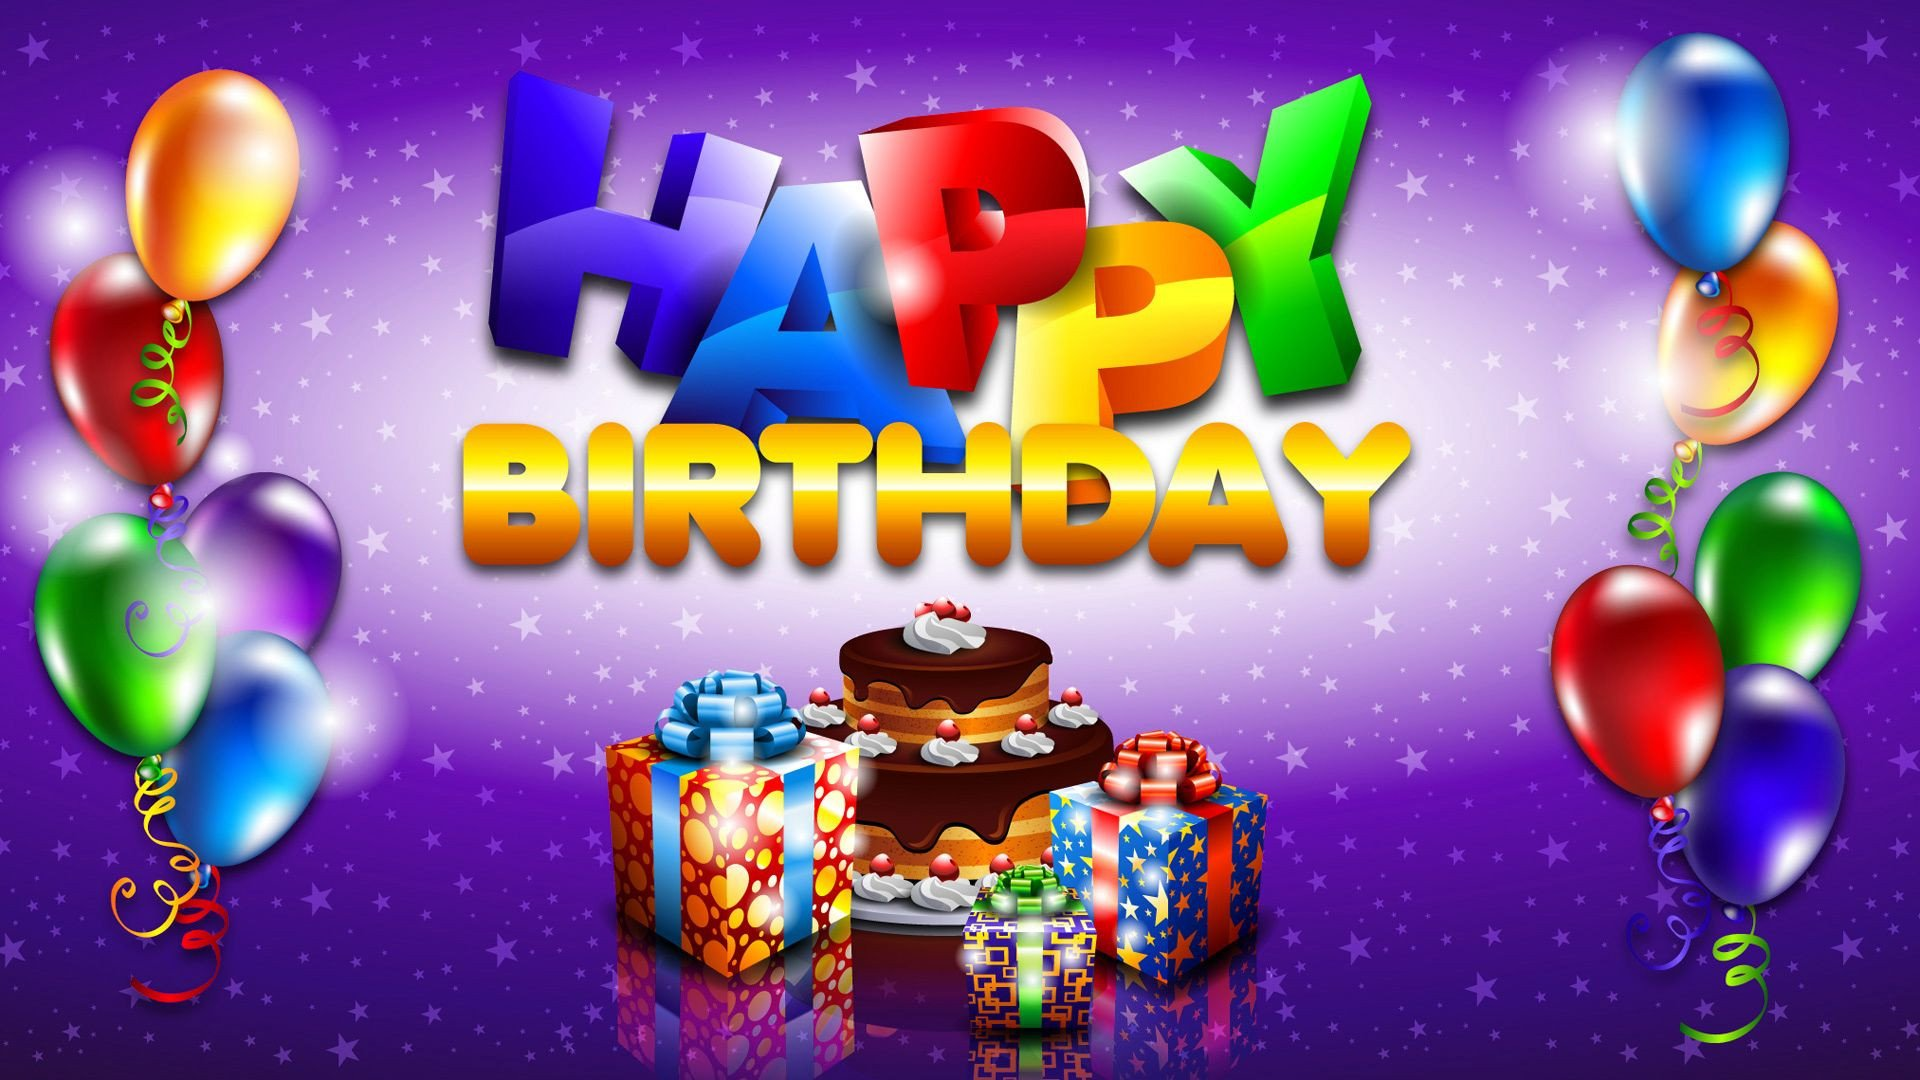 Happy Birthday 3d Image Happy Birthday Hd 3d Google Search